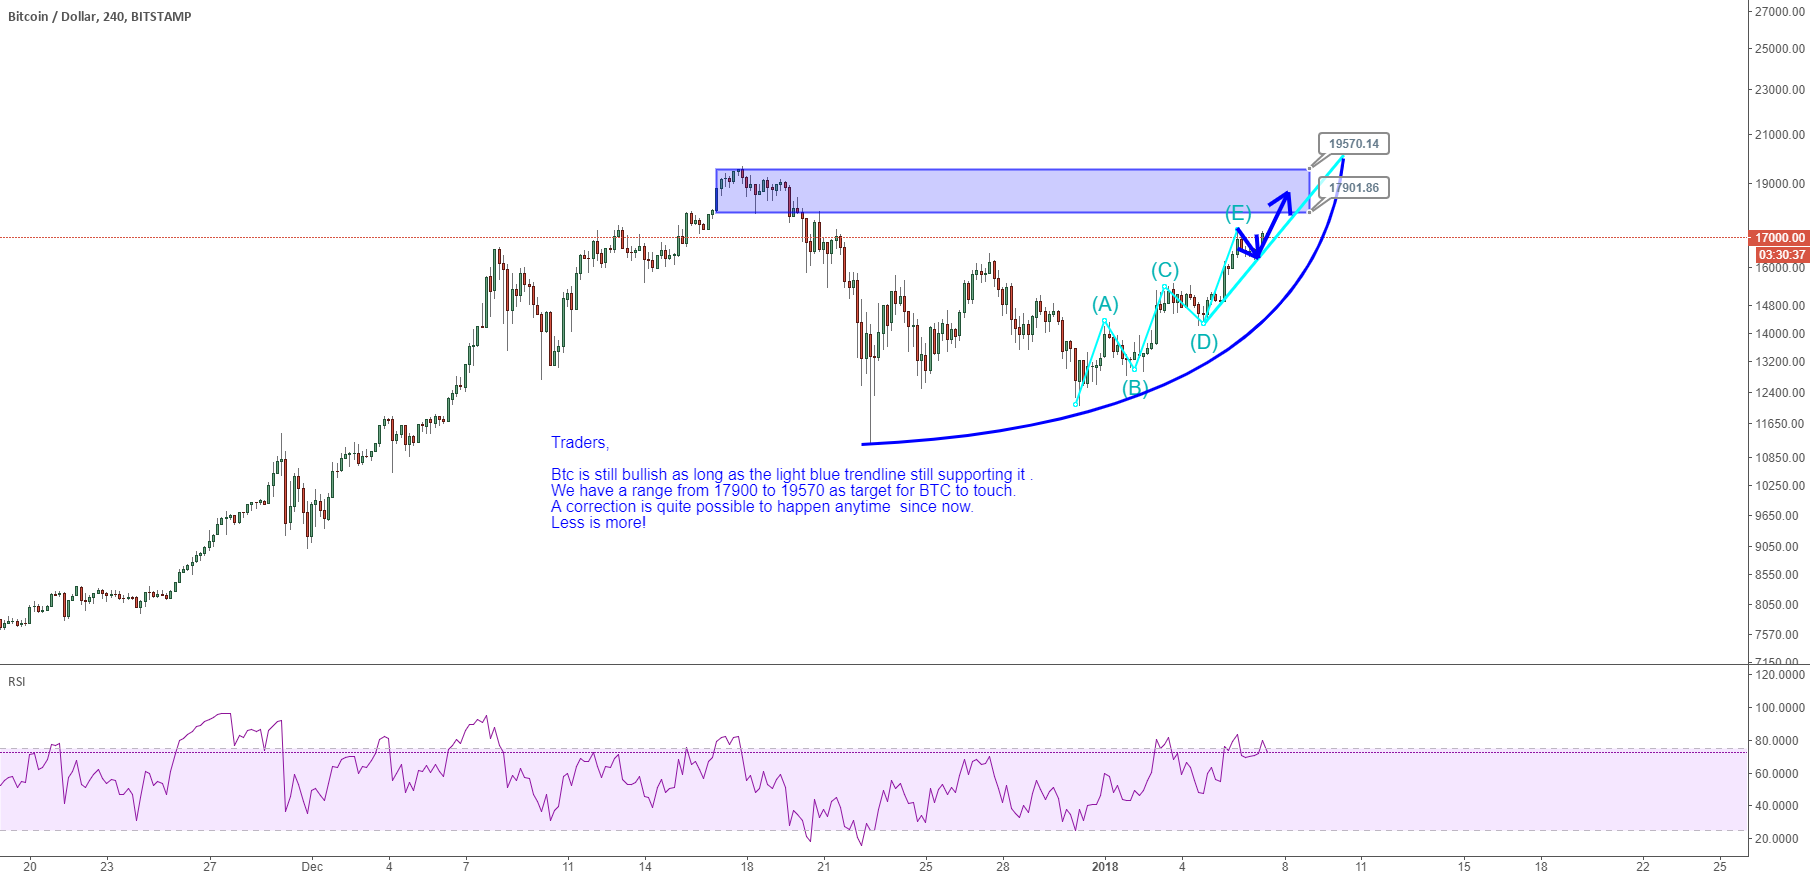 BTCUSD:A correction is quite possible to happen anytime